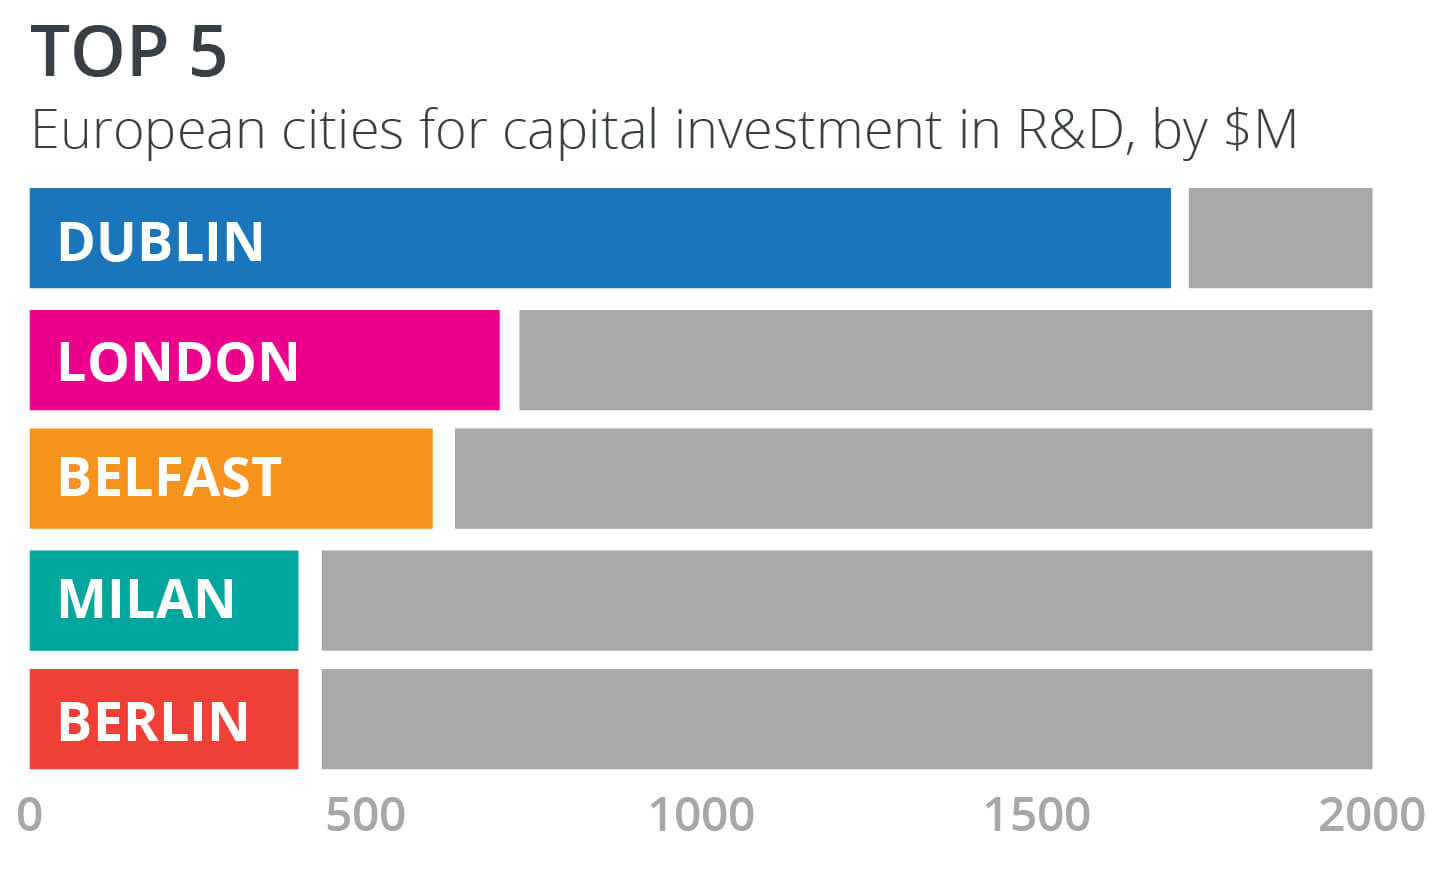 graph depicting top 5 European cities for capital investment